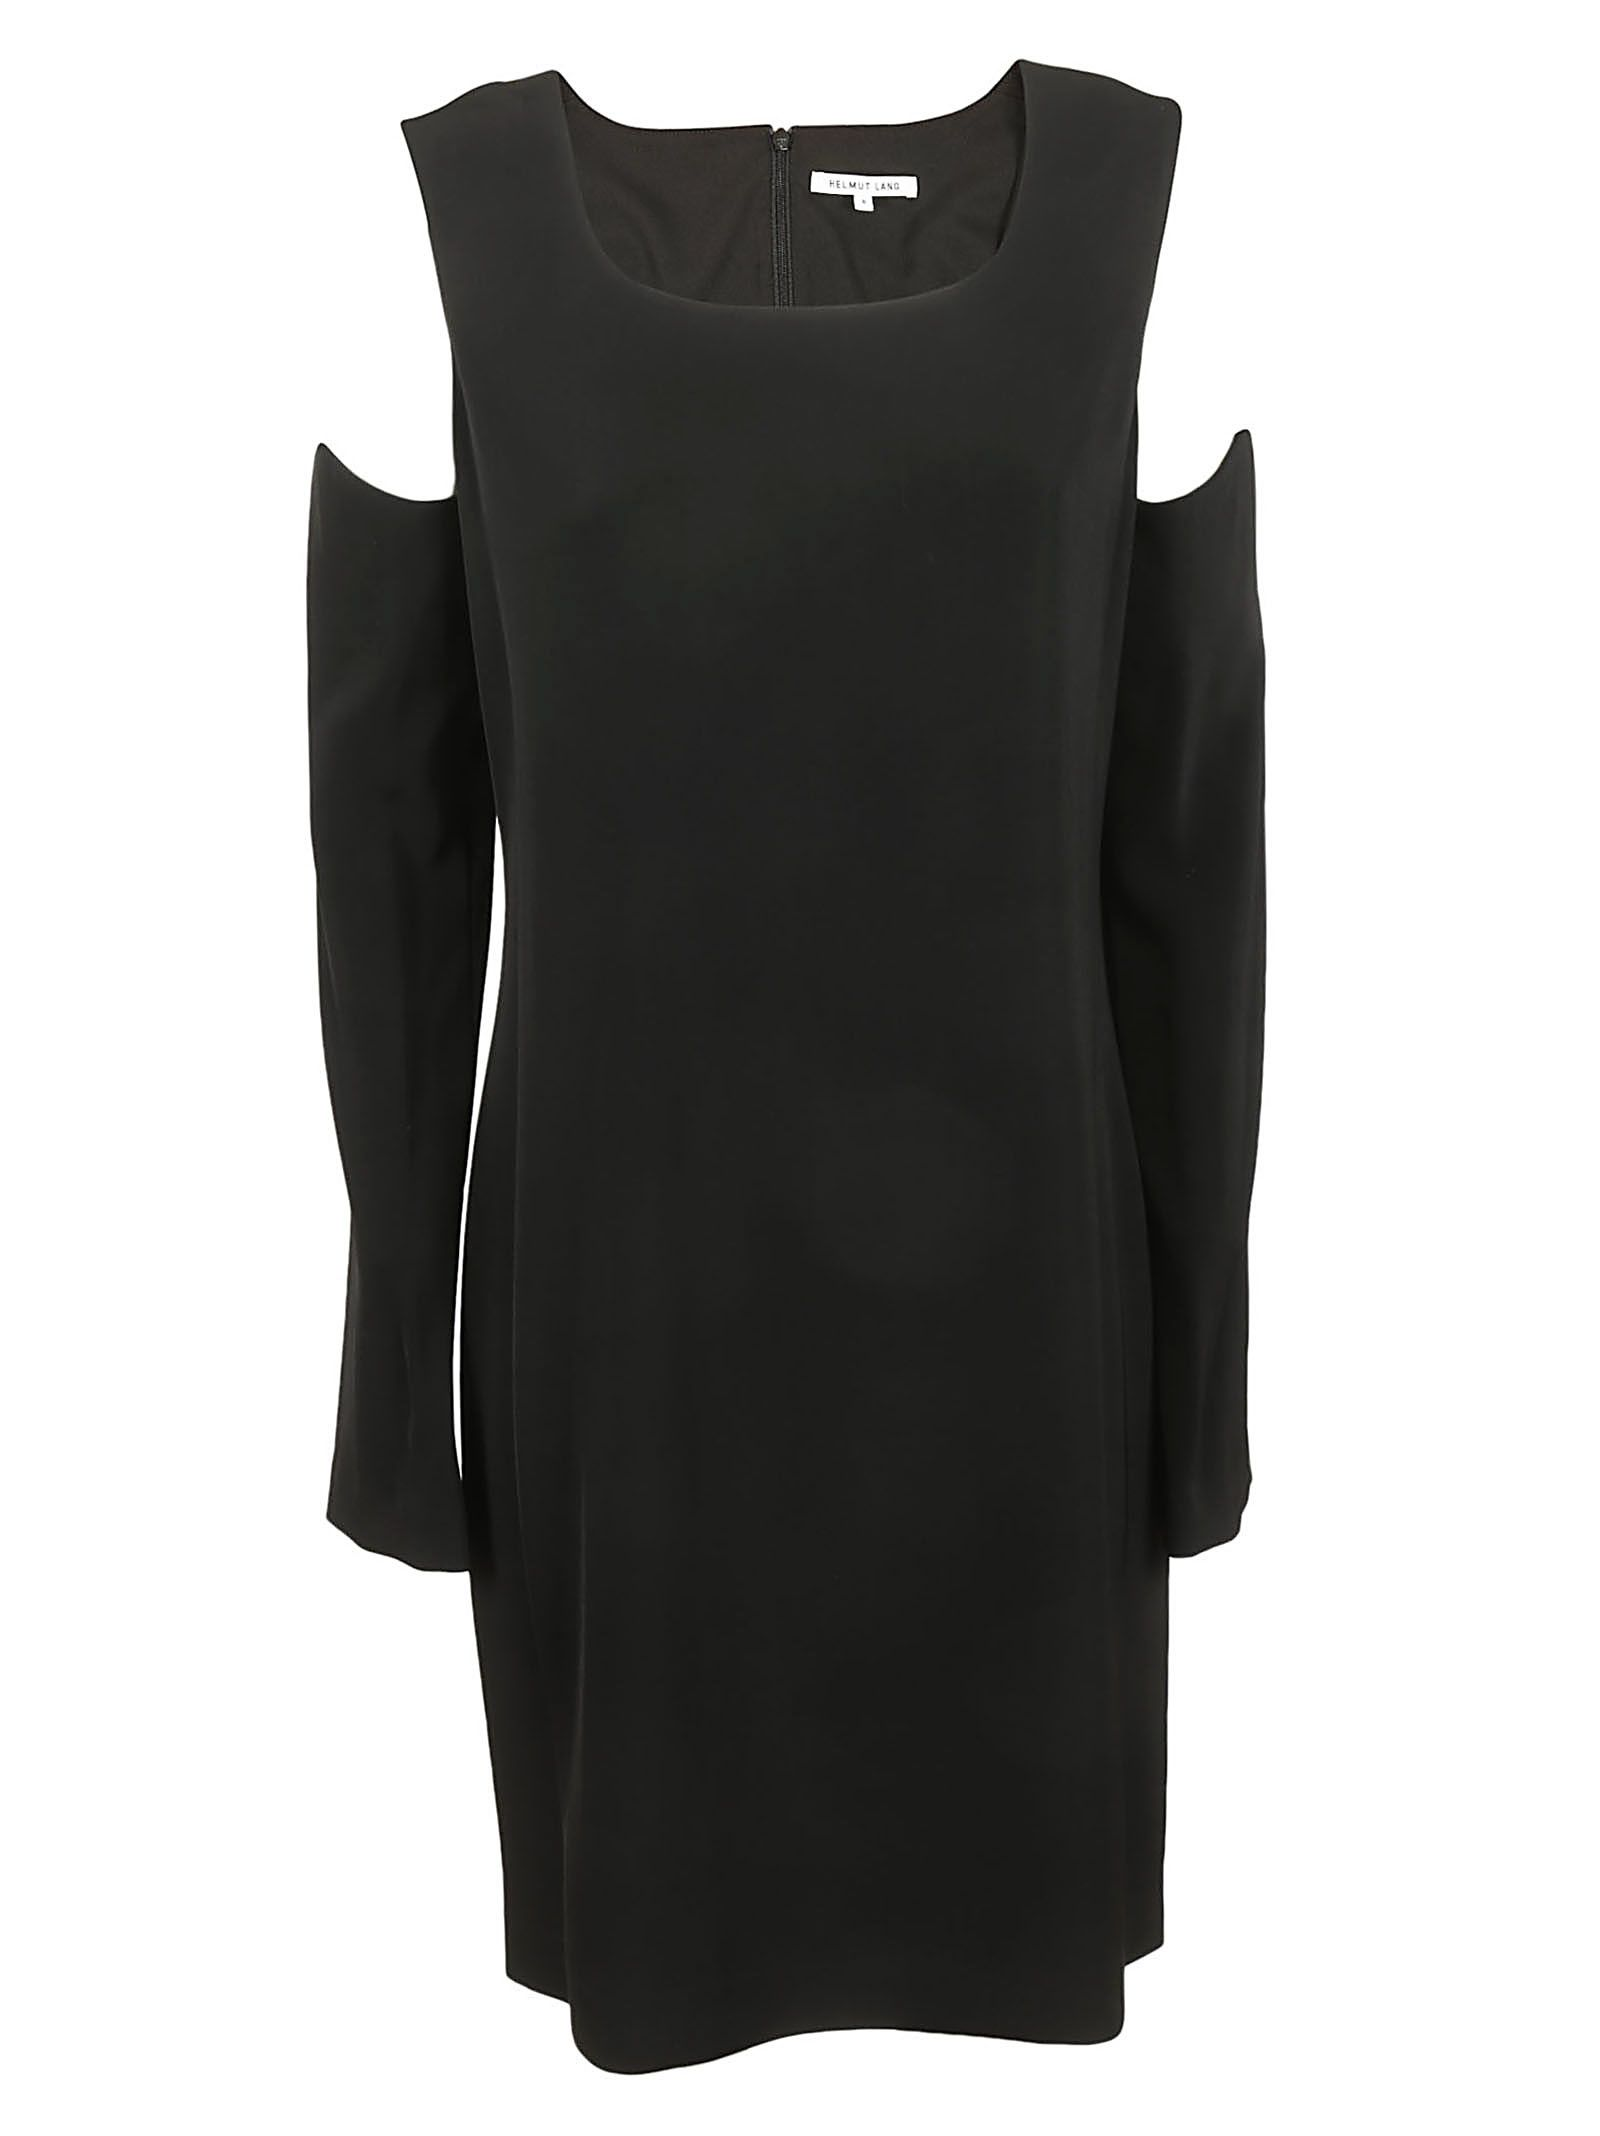 Helmut Lang Cut-out Detail Dress